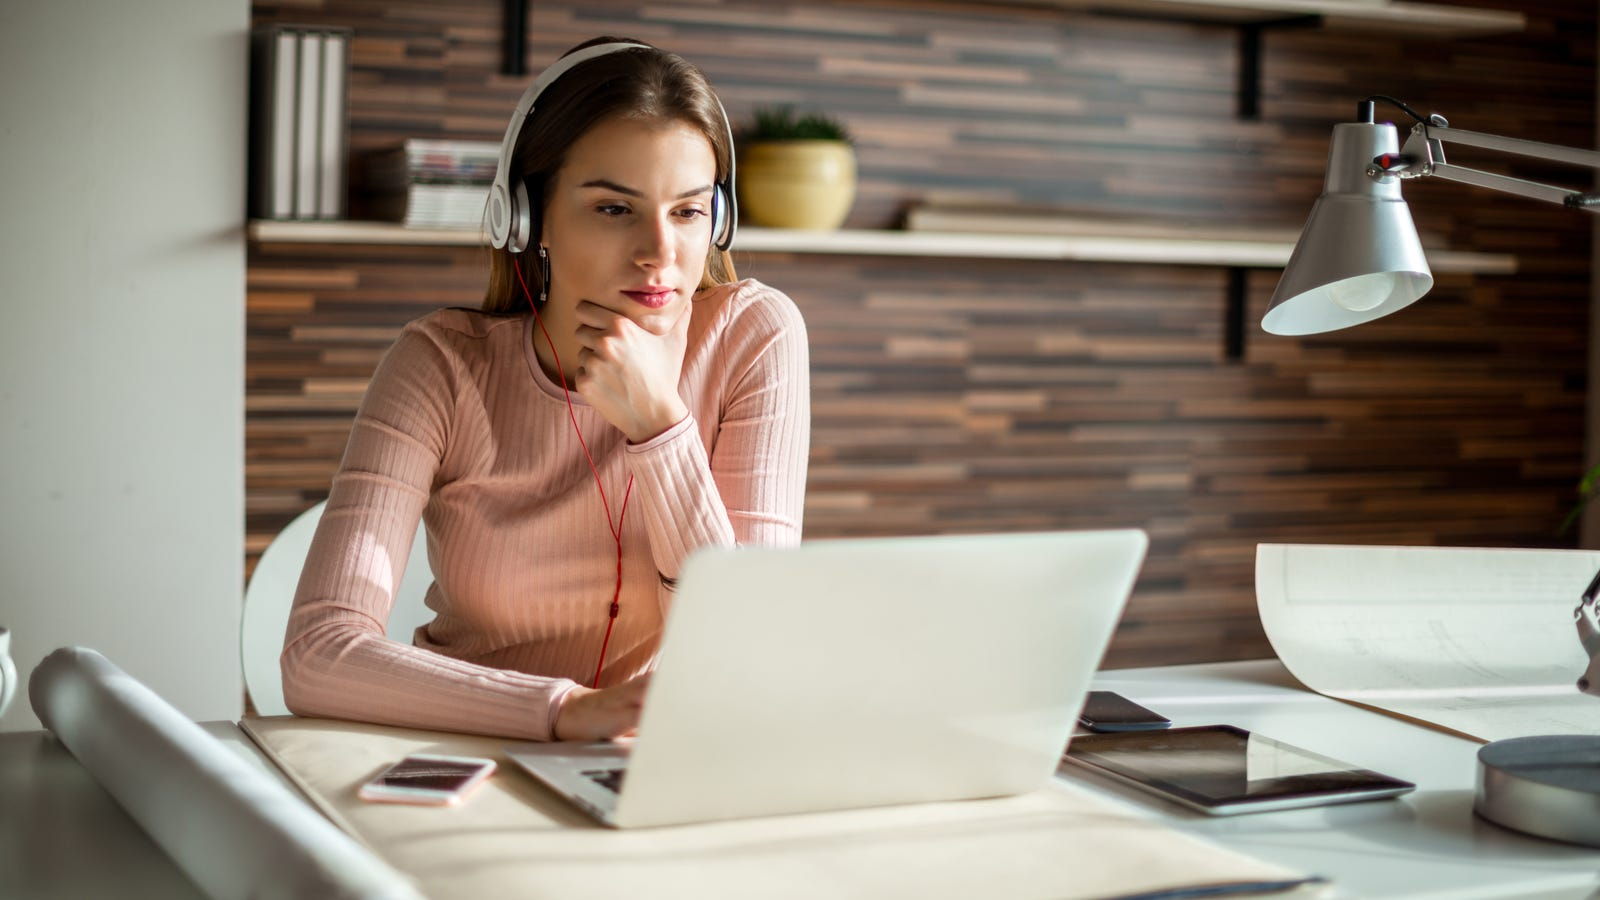 Increase Your Productivity By Listening to White Noise While You Work